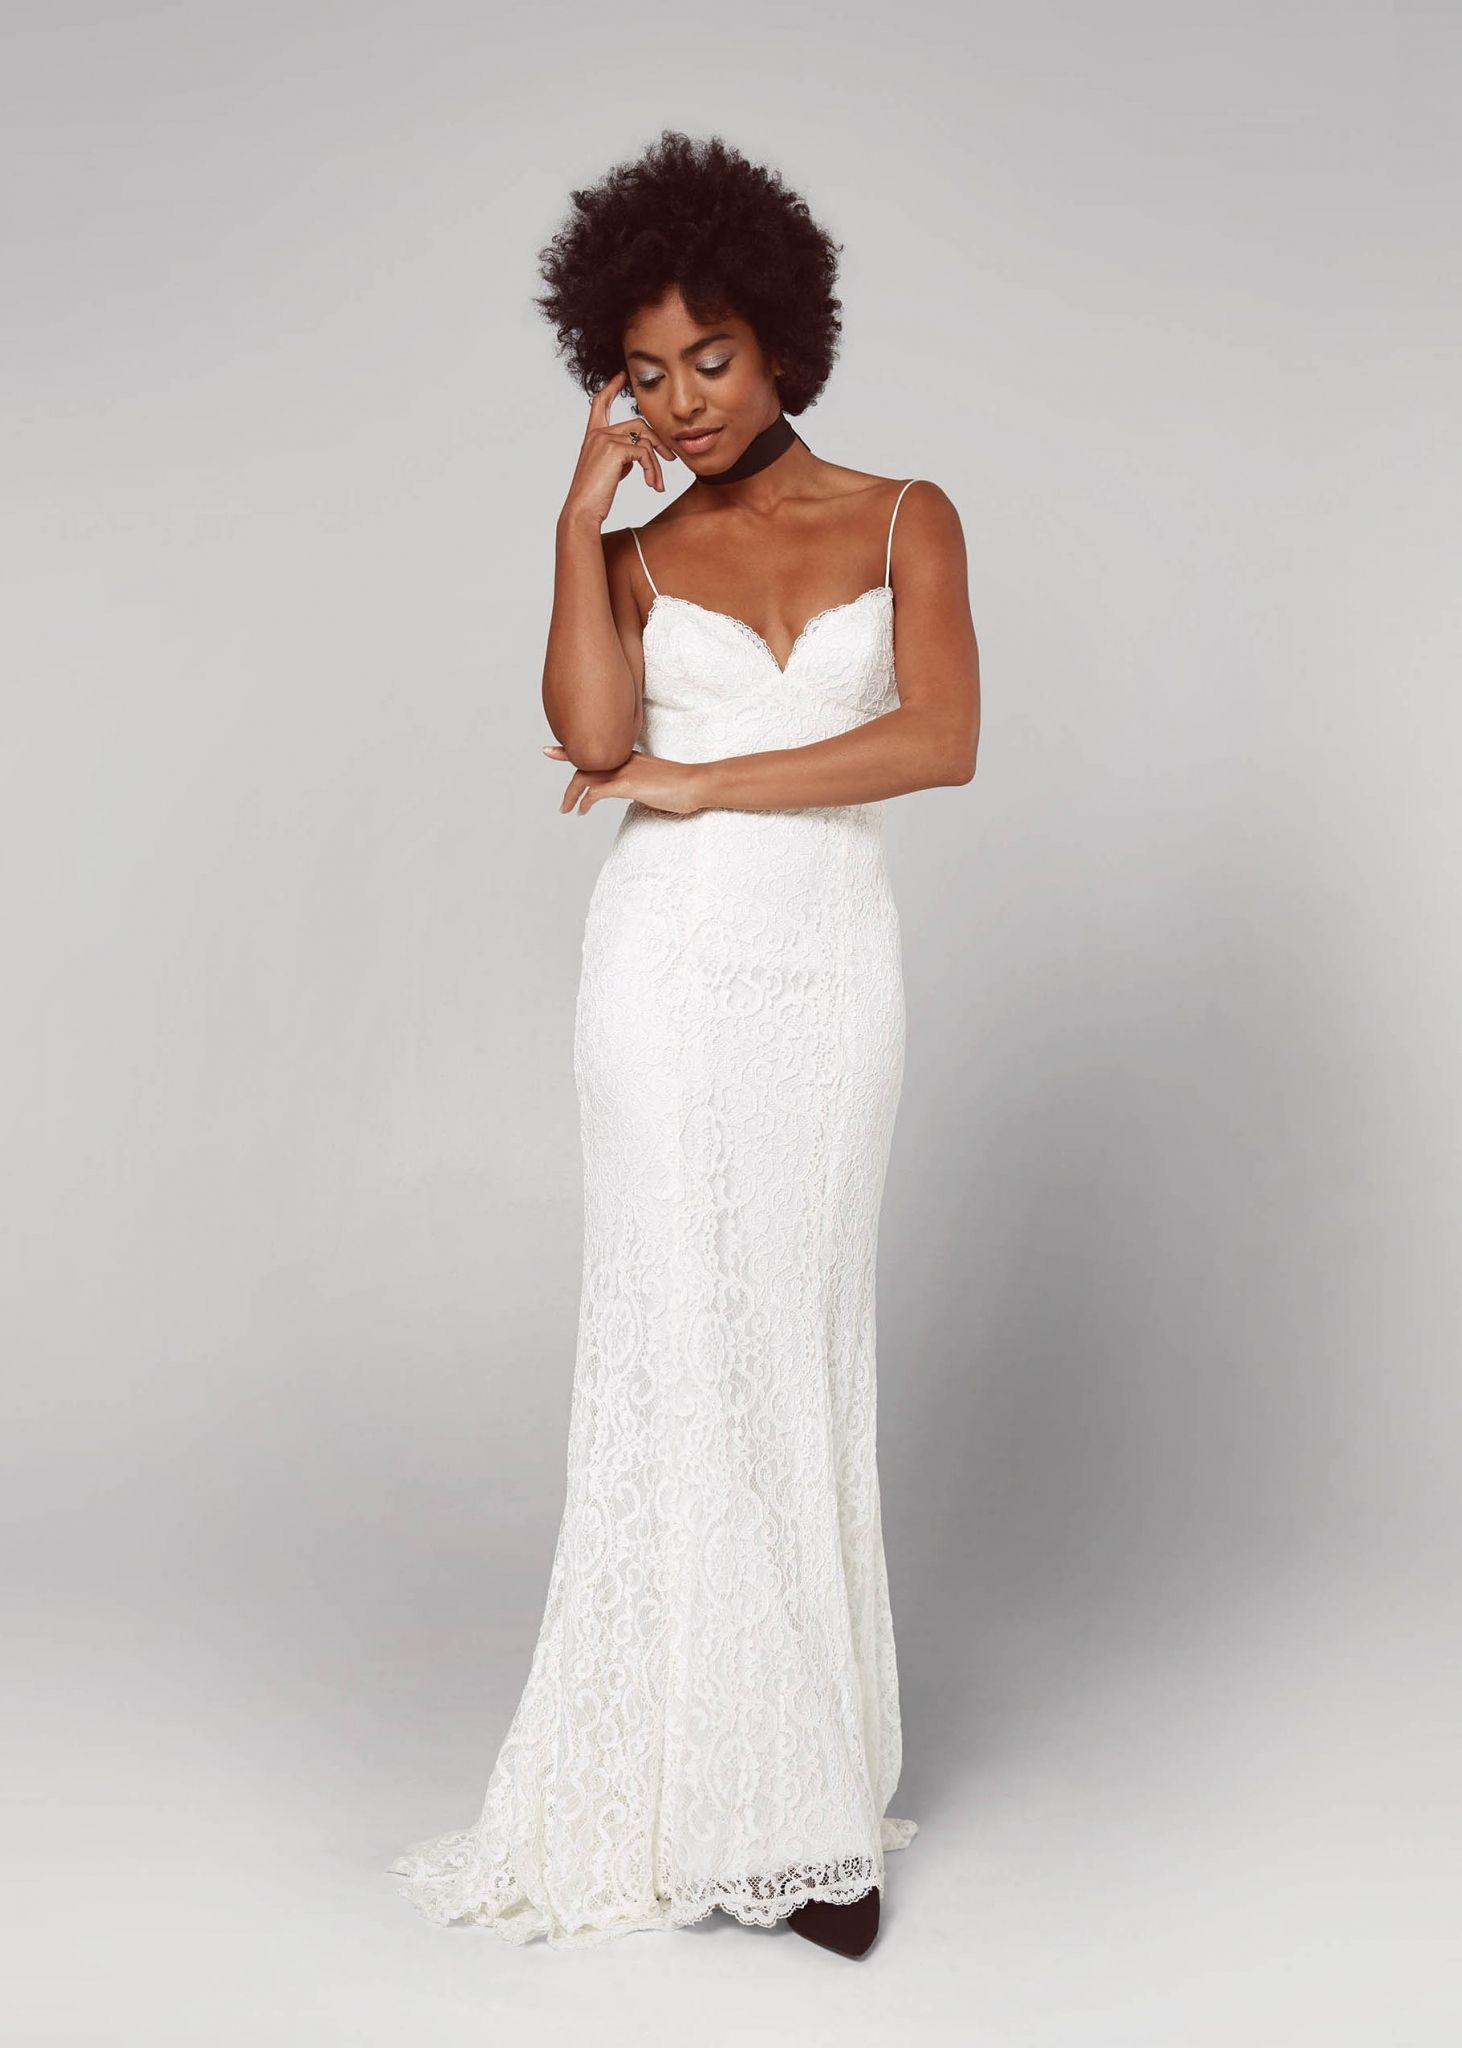 Merveilleux Used Wedding Dresses San Diego   How To Dress For A Wedding Check More At  Http